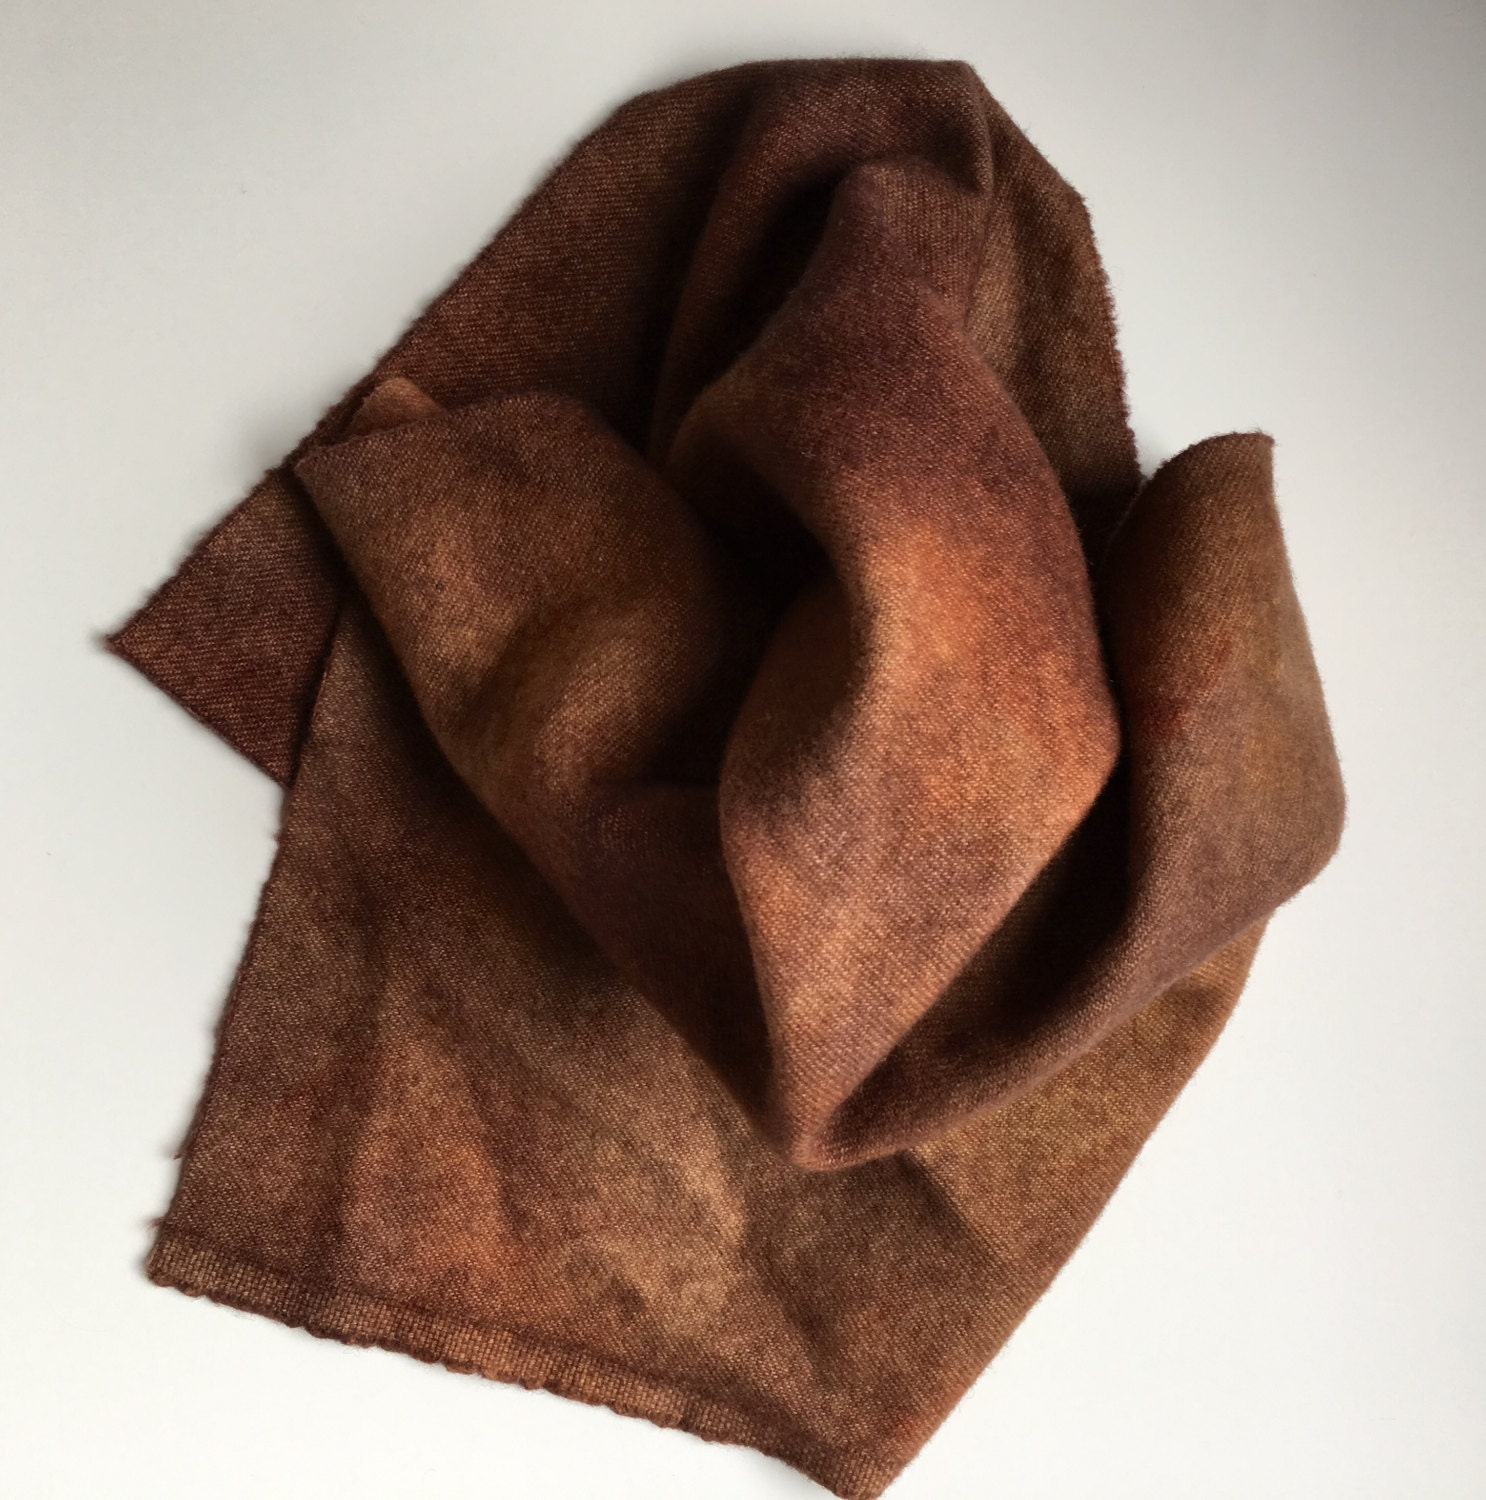 Chocolate Brown, Hand Dyed Wool, Fat Quarter Yard, Felted Wool Fabric for  Rug Hooking, Wool Applique and Crafts